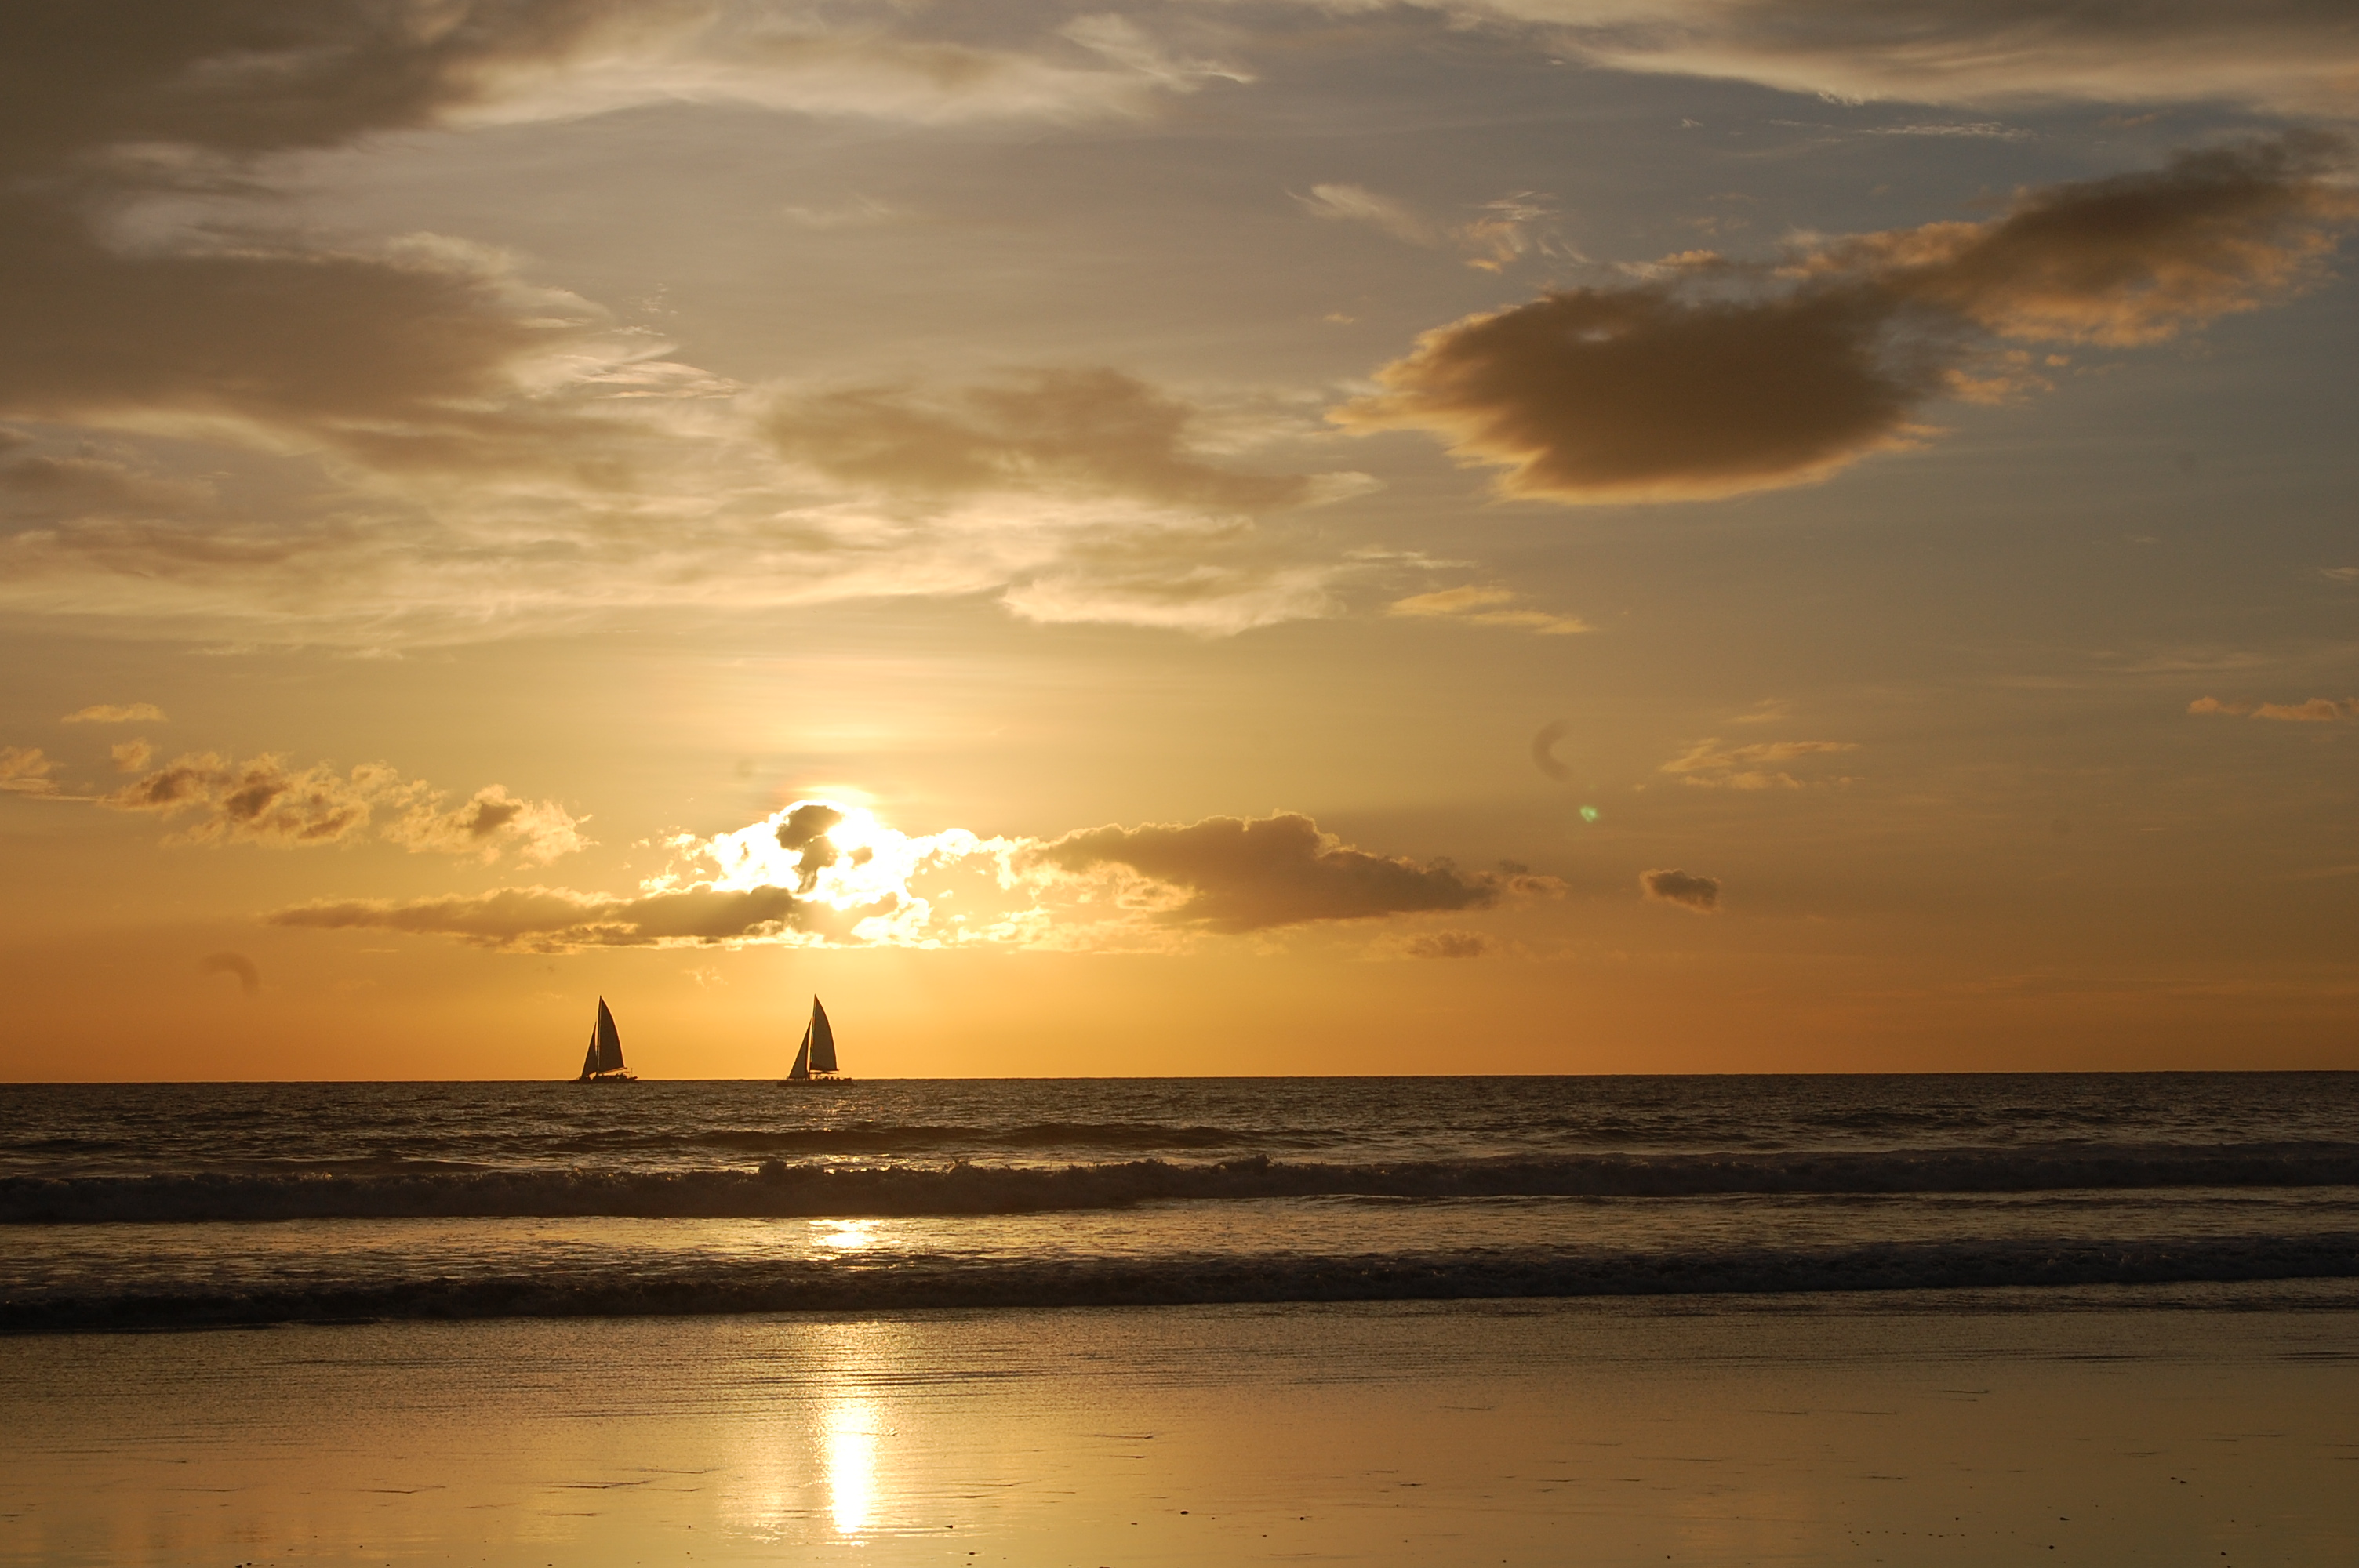 Sailboats and sunset in Nosara, Costa Rica